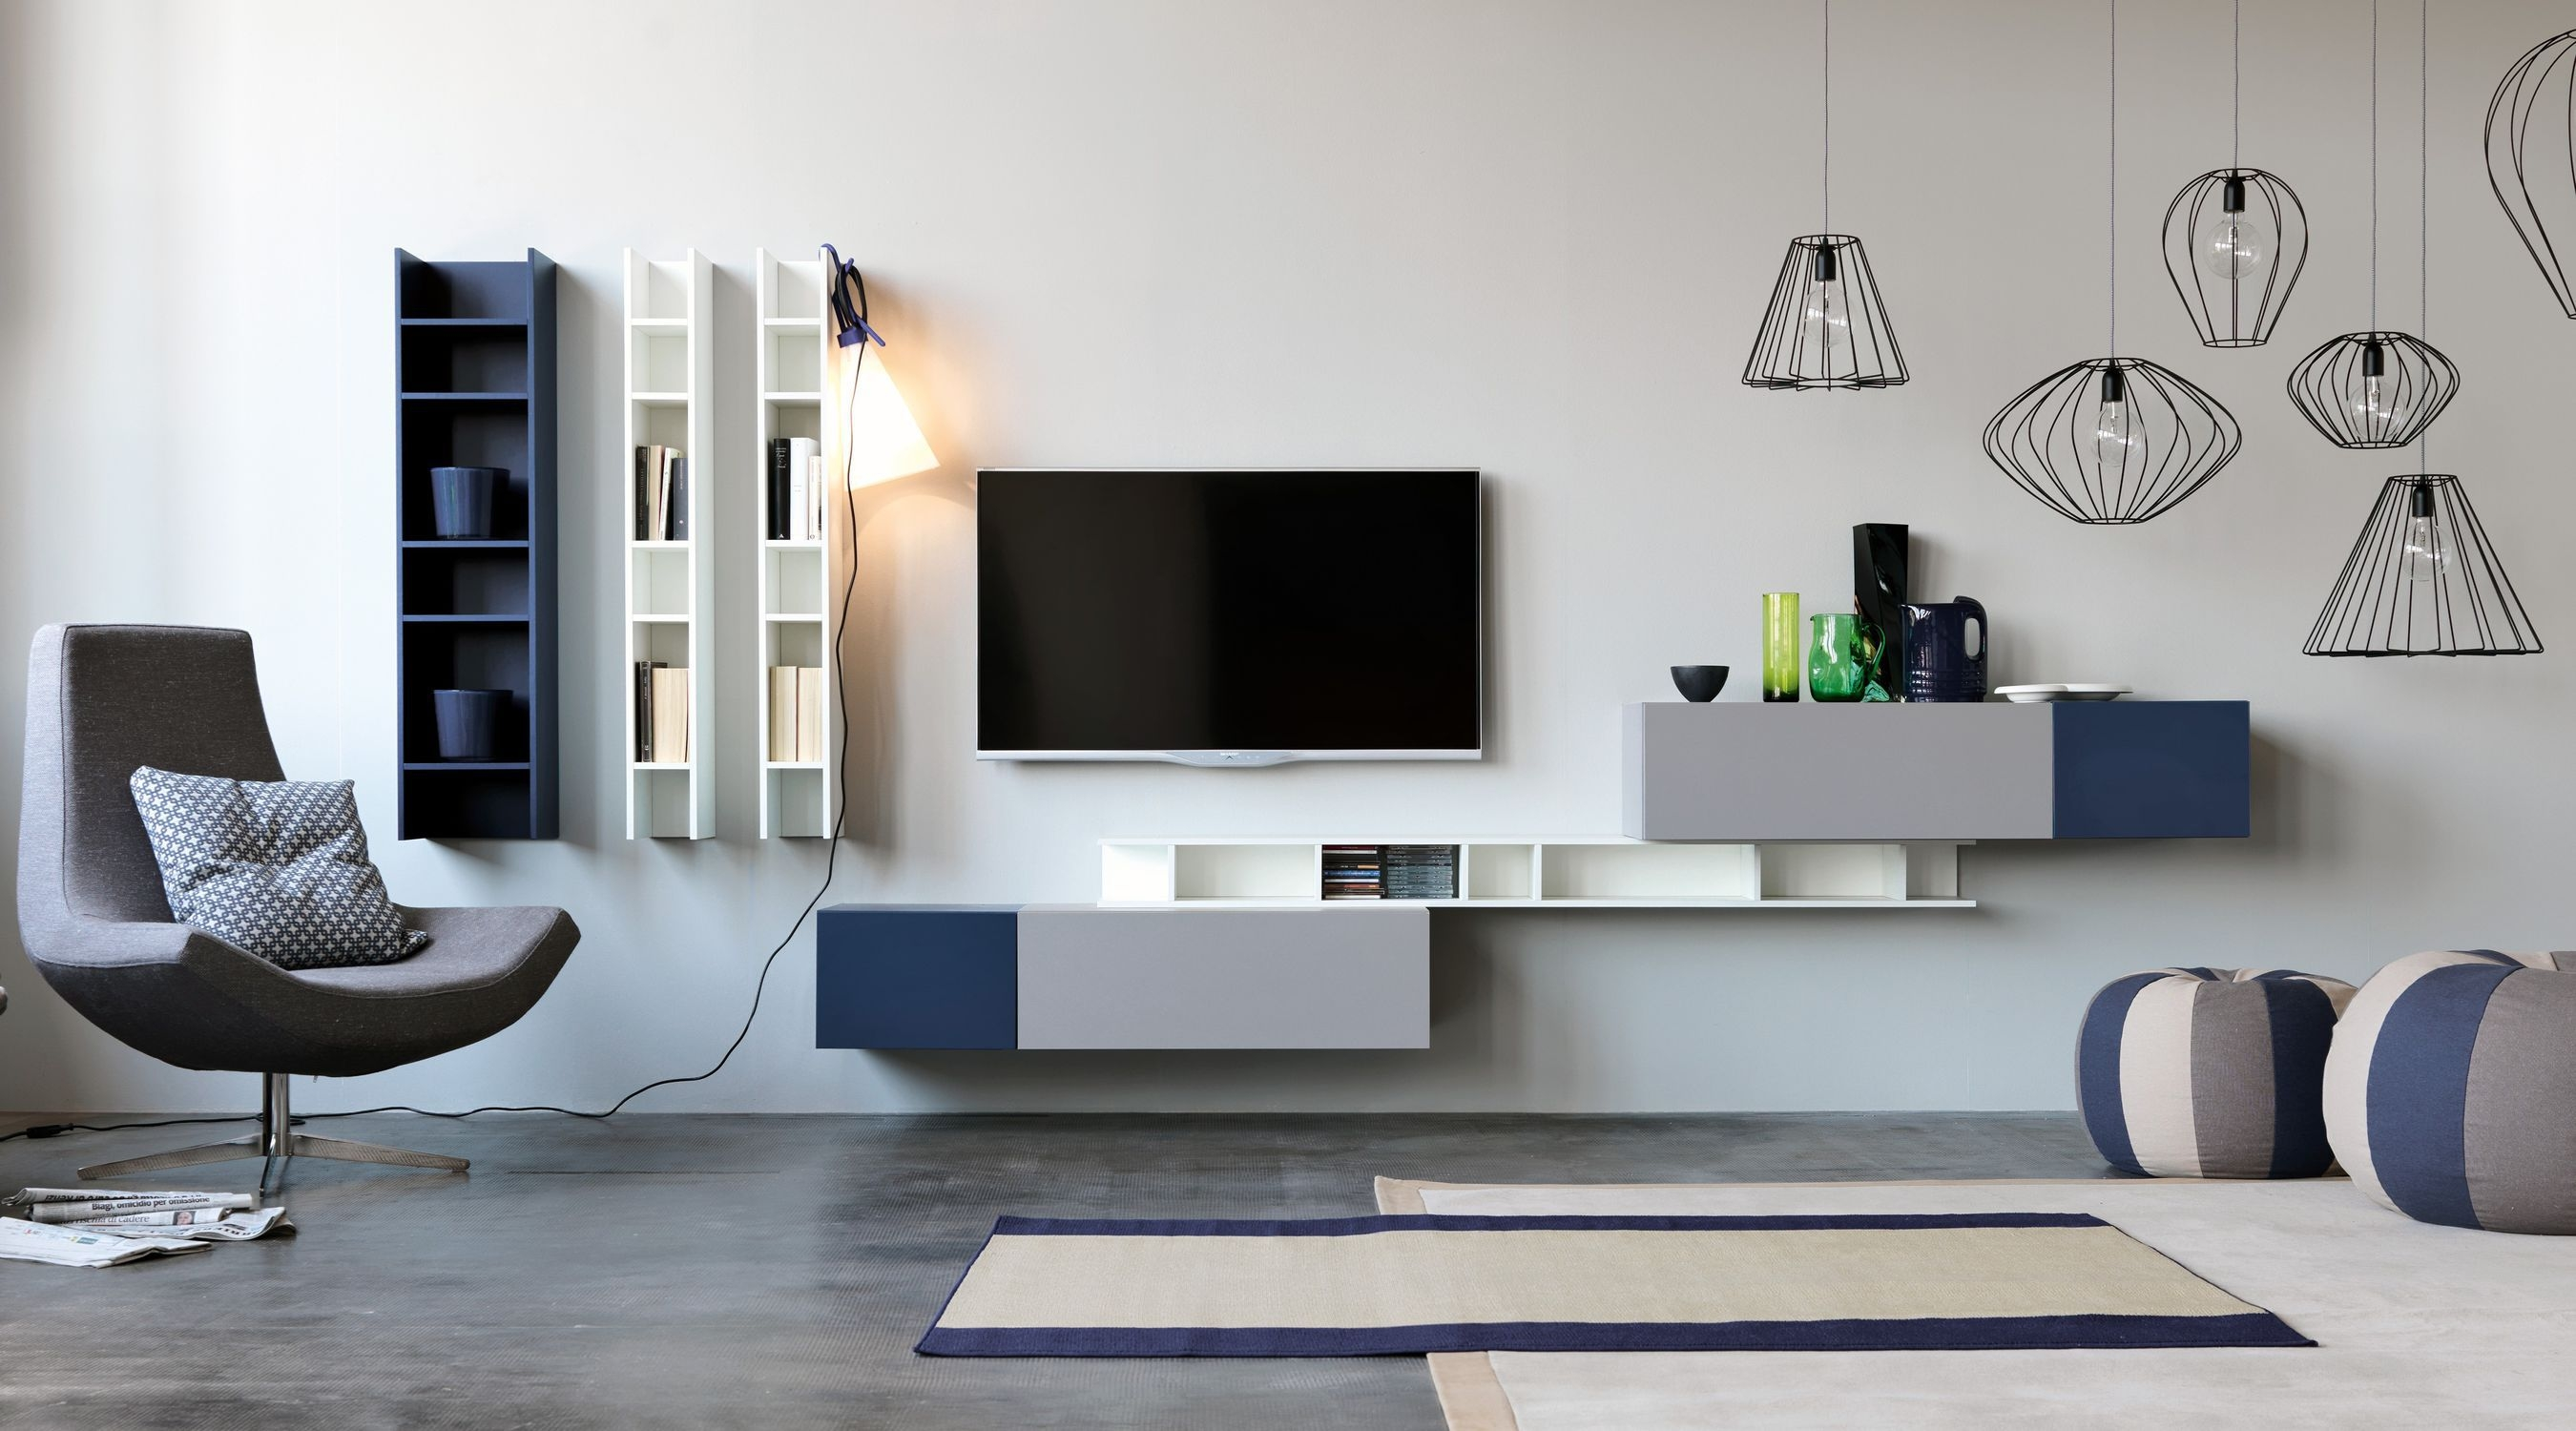 Contemporary Tv Wall Unit Modular Citylife 14 Doimo Cityline With Tv Wall Unit (#2 of 15)